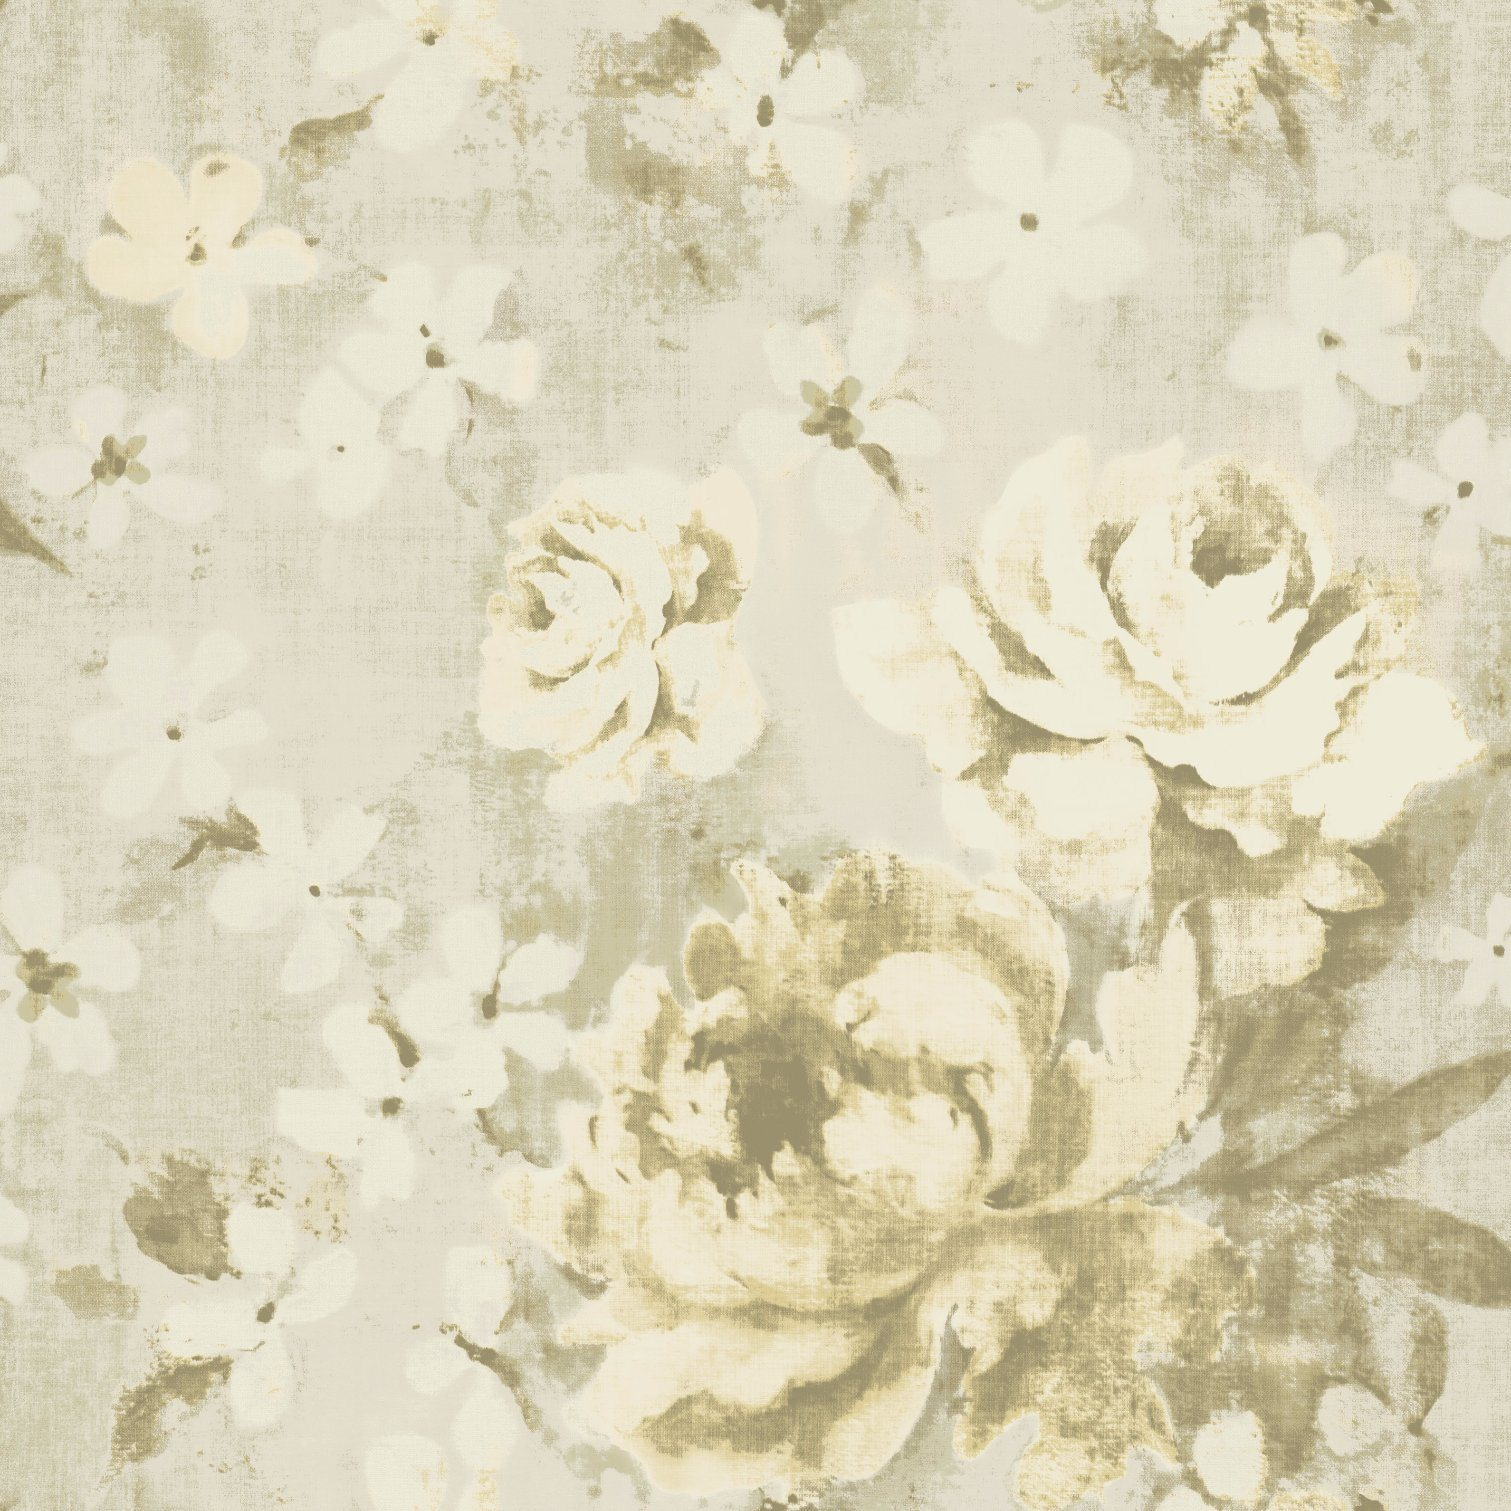 China Textured Wallpaper Flower Pattern Design 220 240g Sqm 53cm